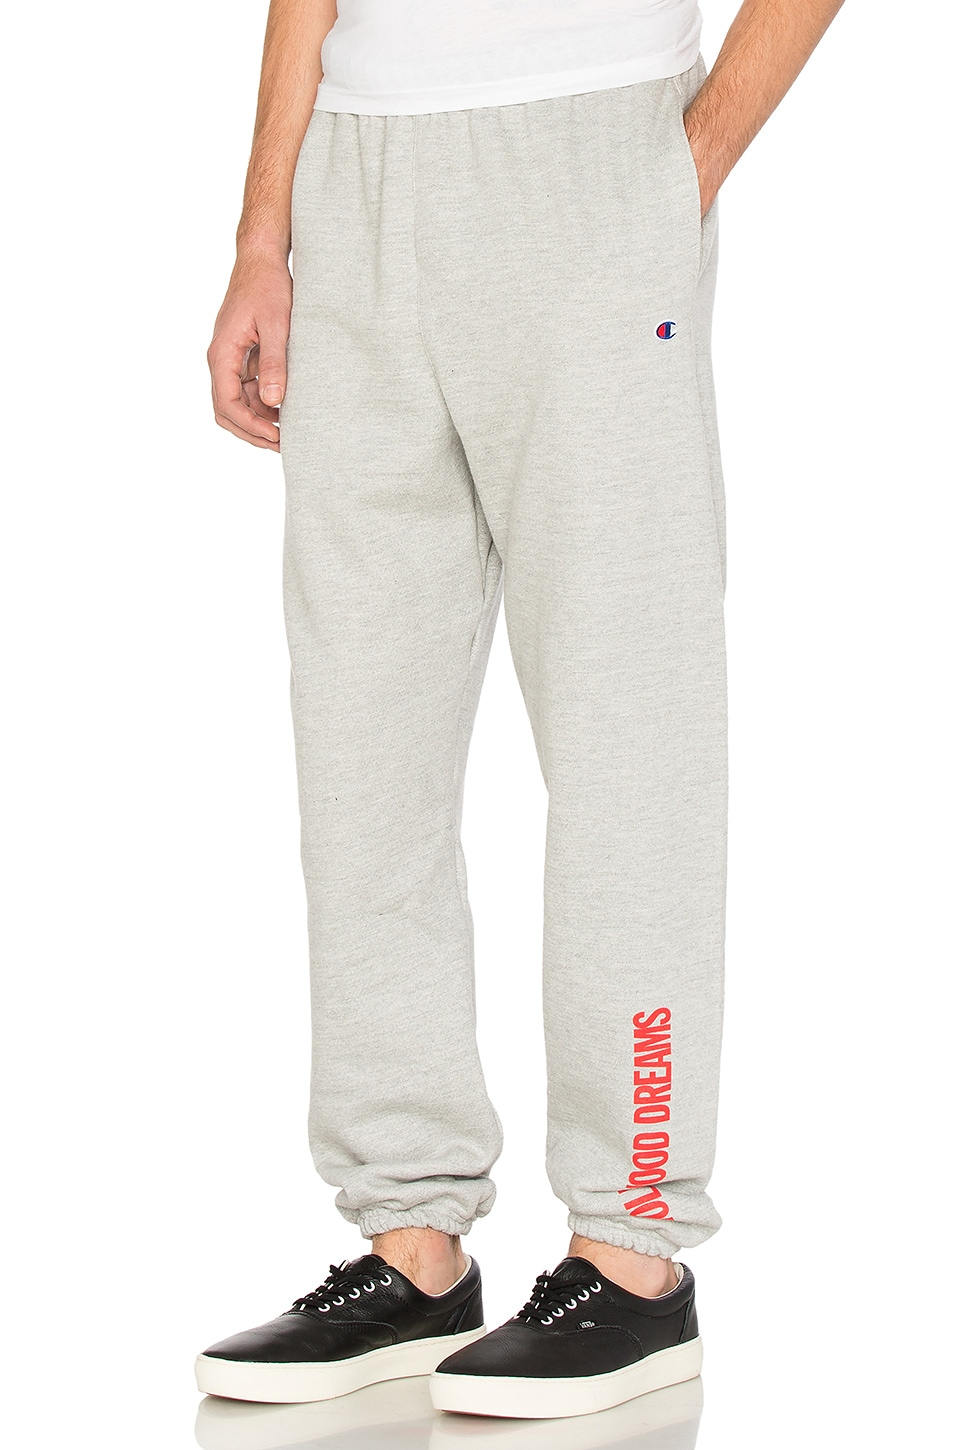 Hollywood Dreams Sweatpants by Post Malone